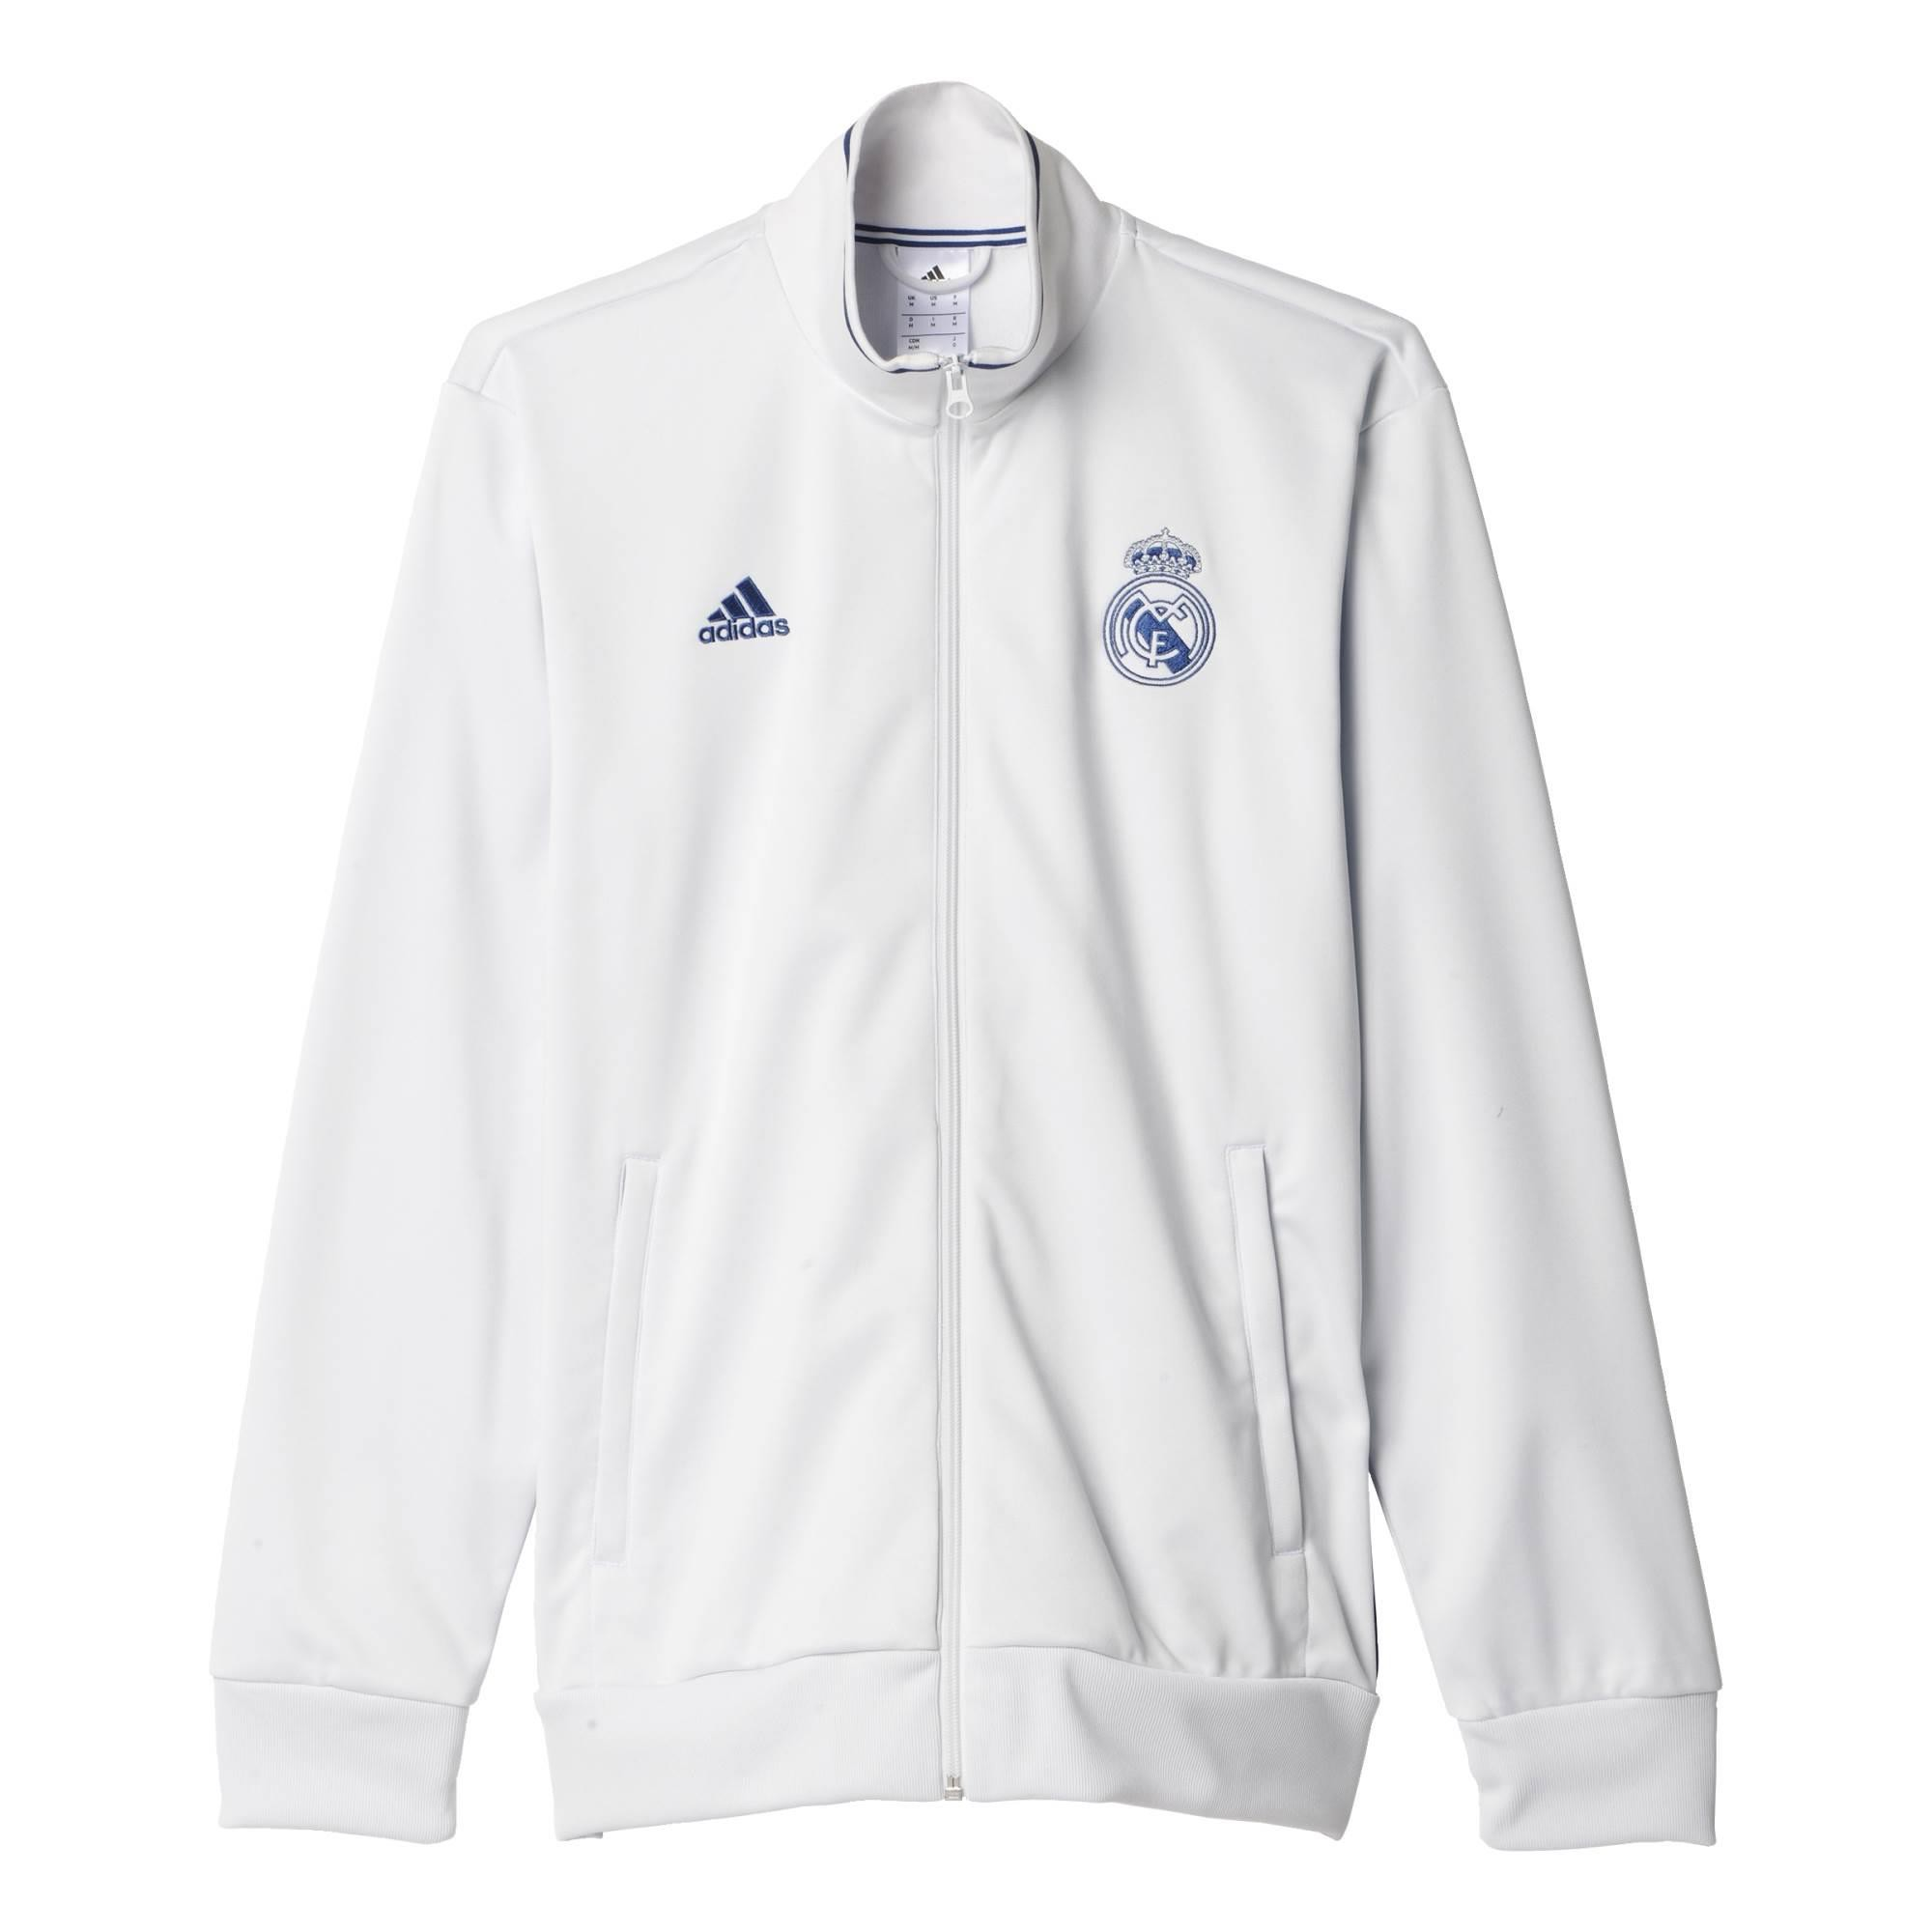 862a5e74564d 2016-2017 Real Madrid Adidas 3S Track Top (White)